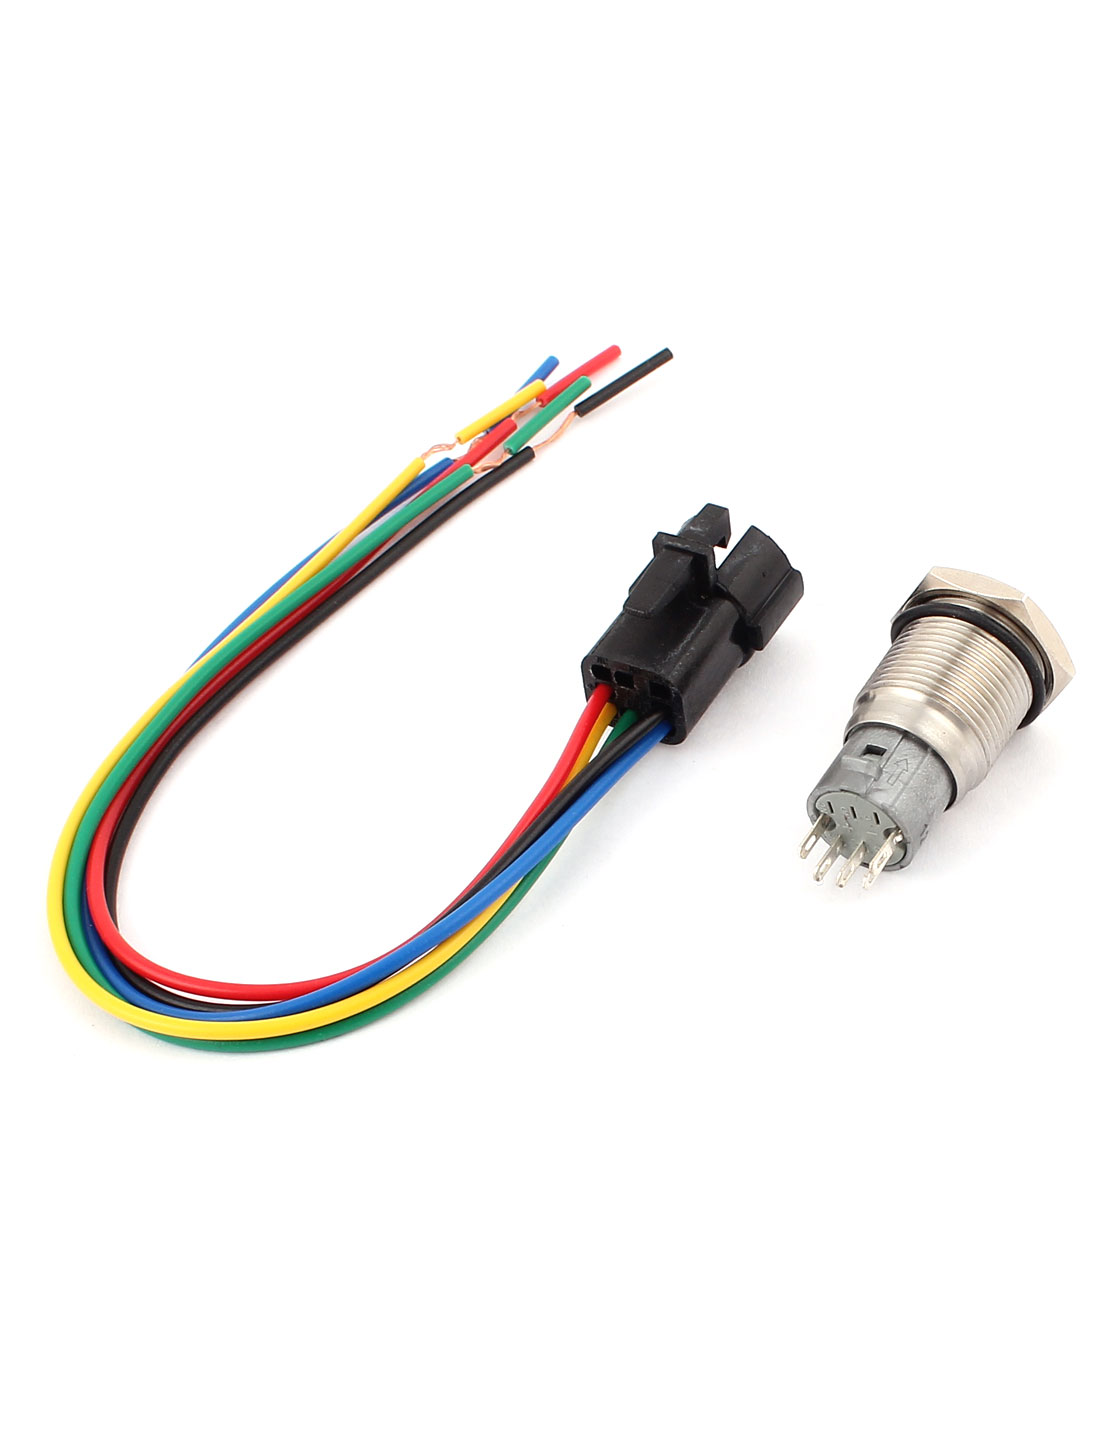 medium resolution of dc 12v green angle eye spdt latching car push button switch 16mm w wire walmart canada